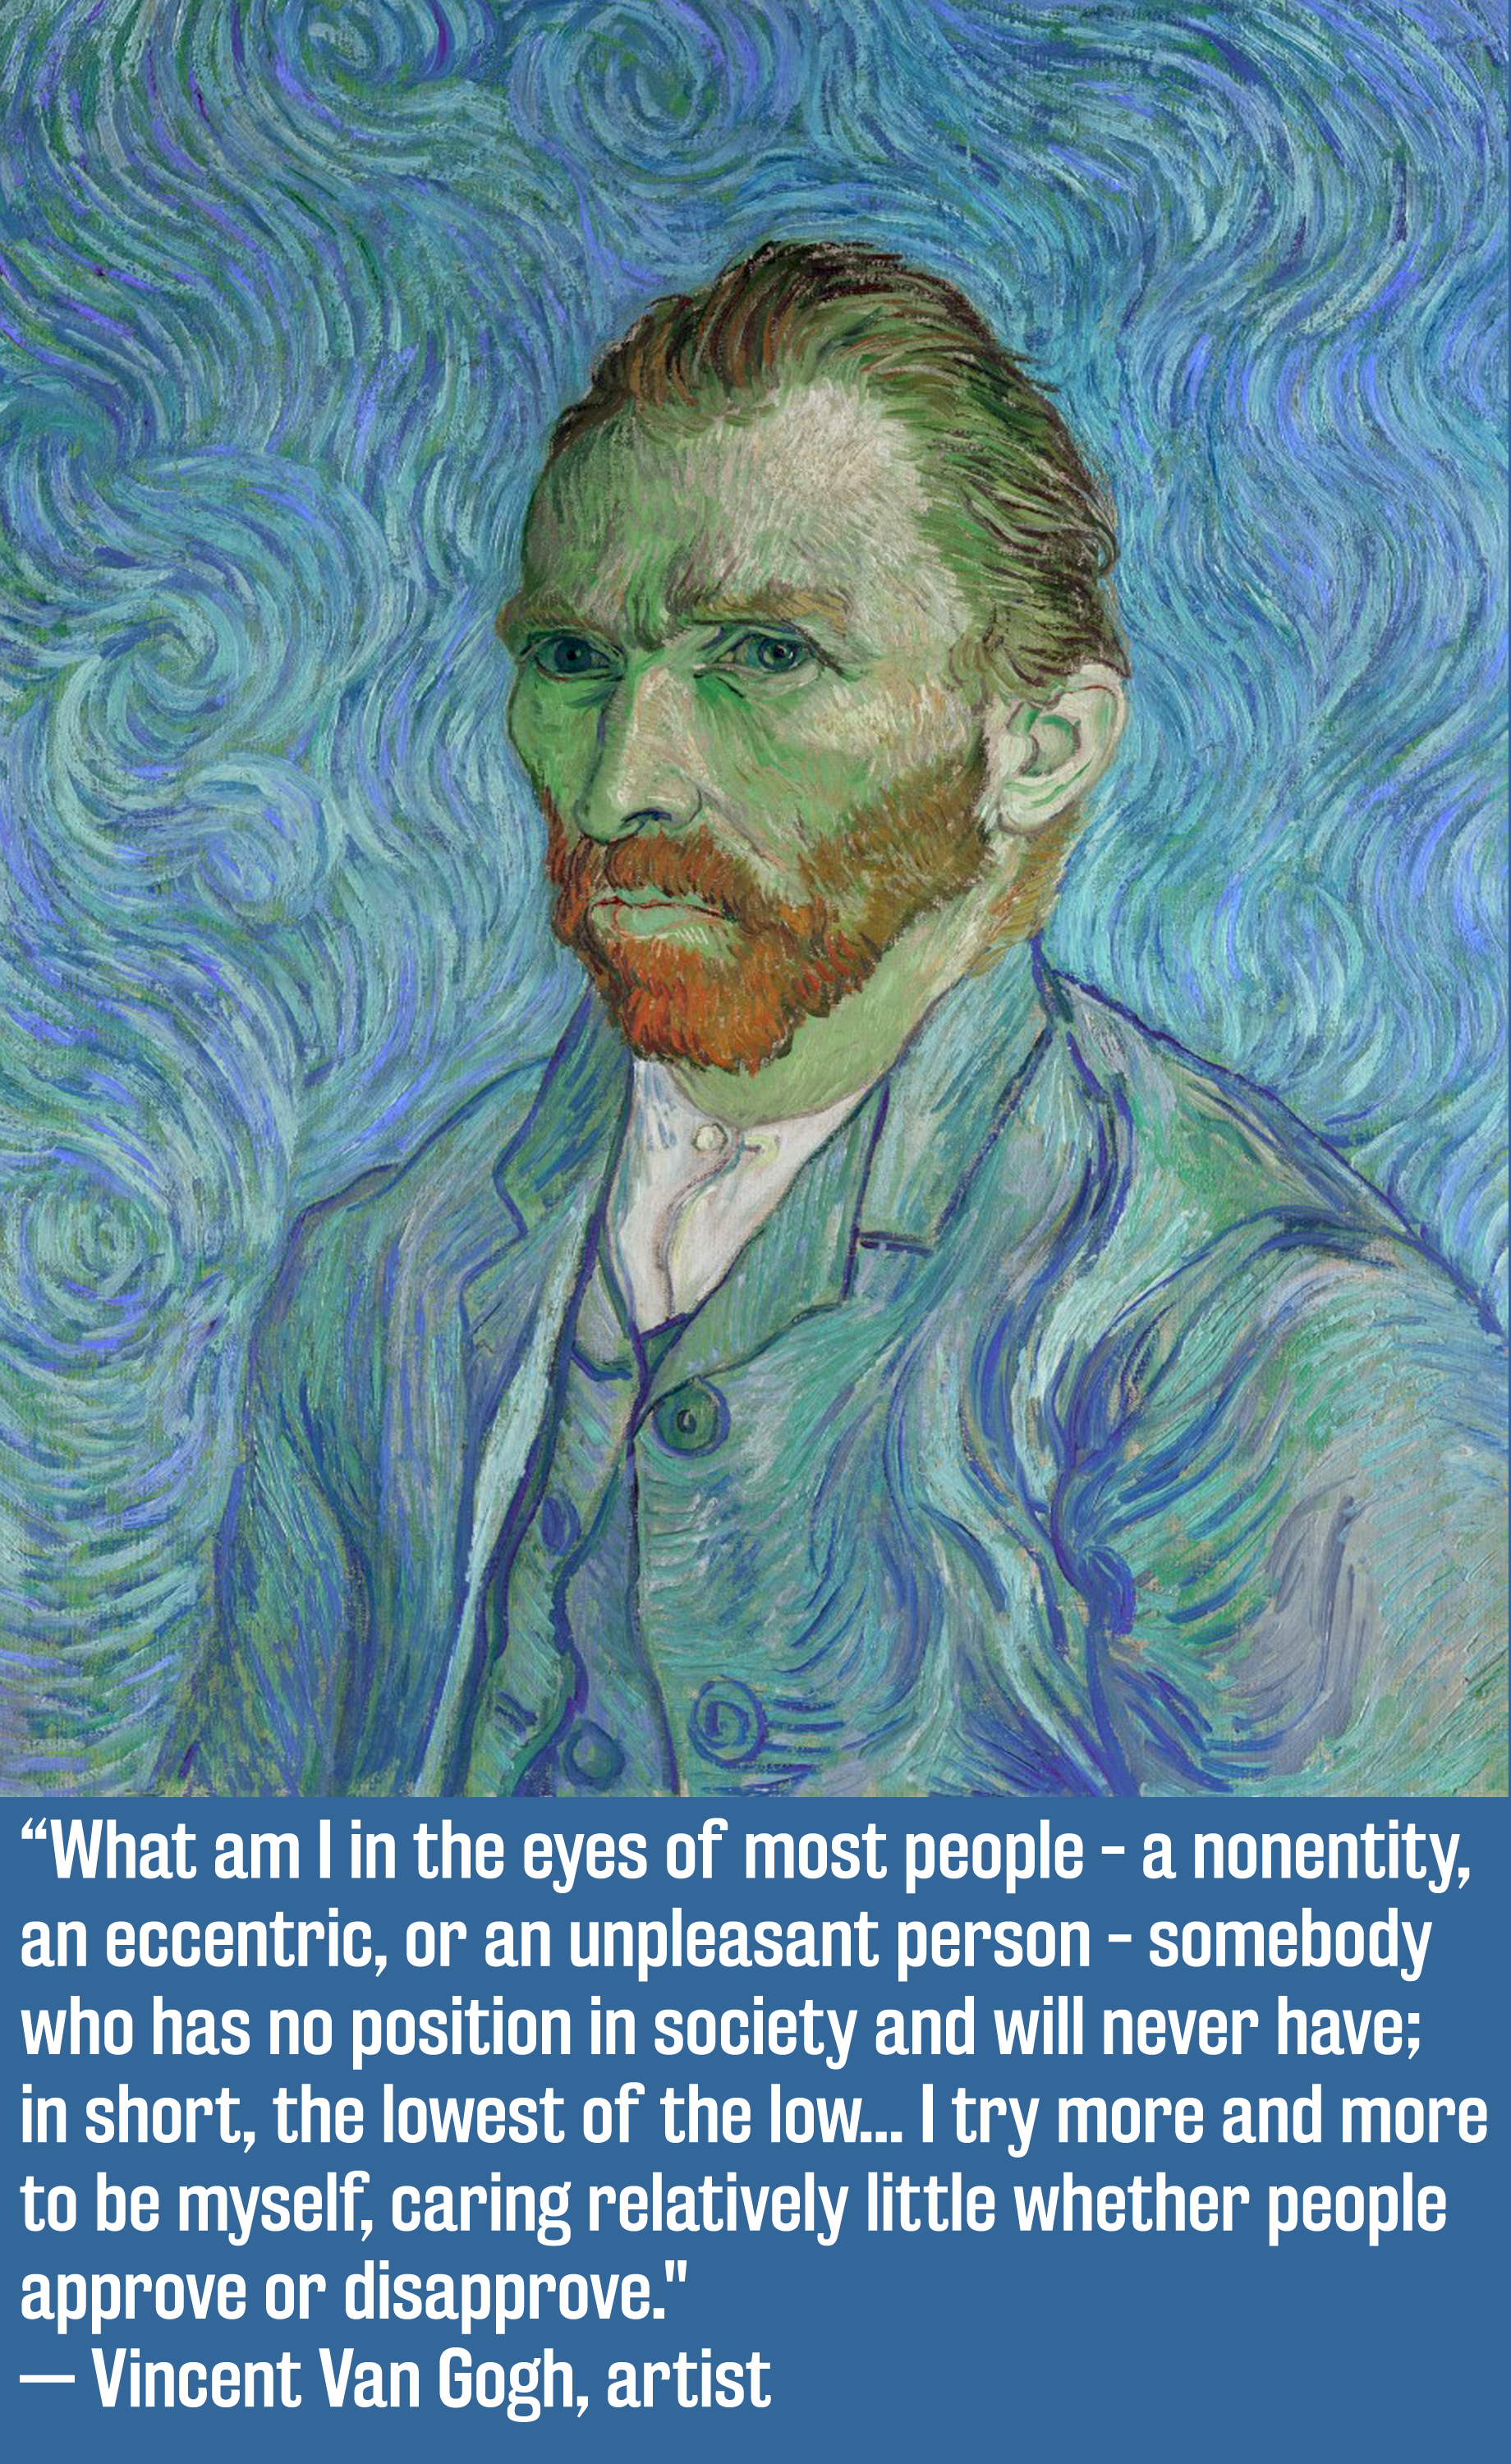 What am I in the eyes of most people, a nonentity, an eccentric or an unpleasant person, somebody who has no position in society and will never have; in short, the lowest of the low. I try more and more to be myself, caring relatively little whether people approve or disapprove. Van Gogh [1840×3000]